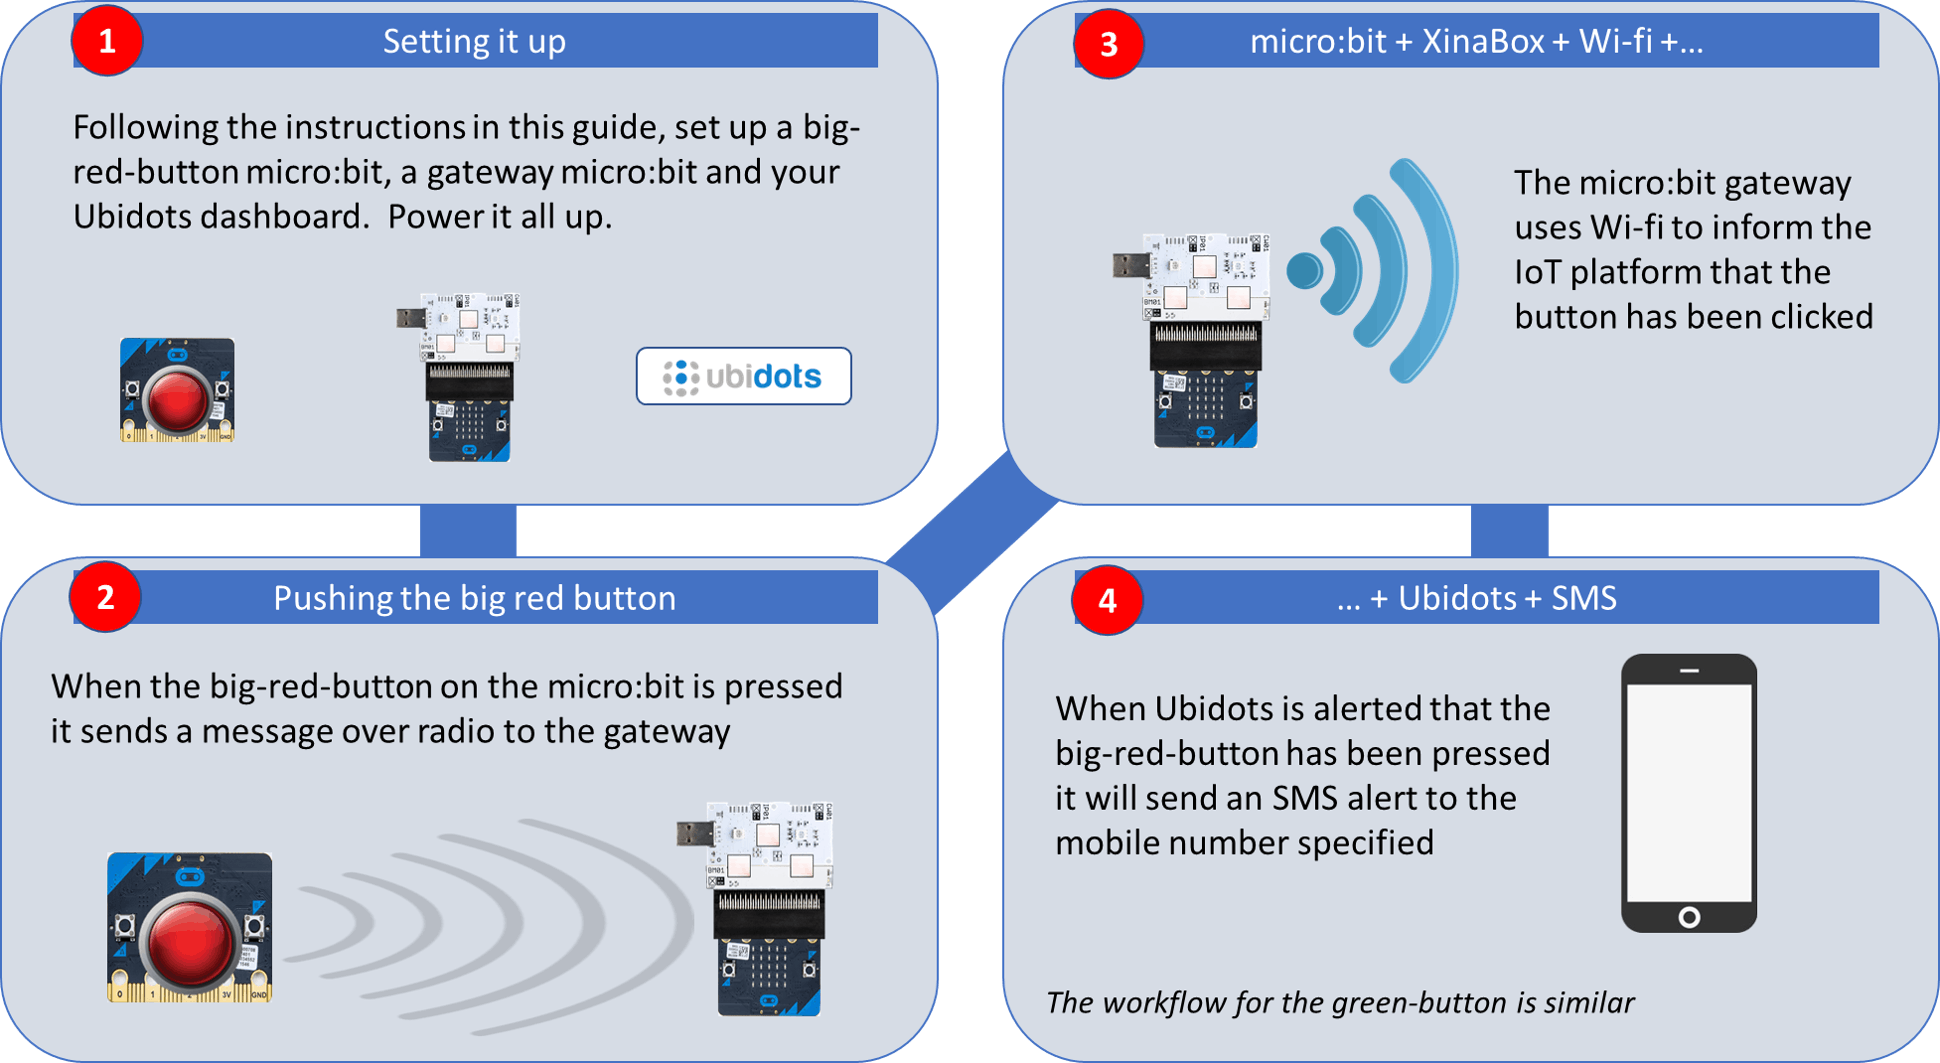 It works similarly for the green button, although the alert in Step 4 is slightly different